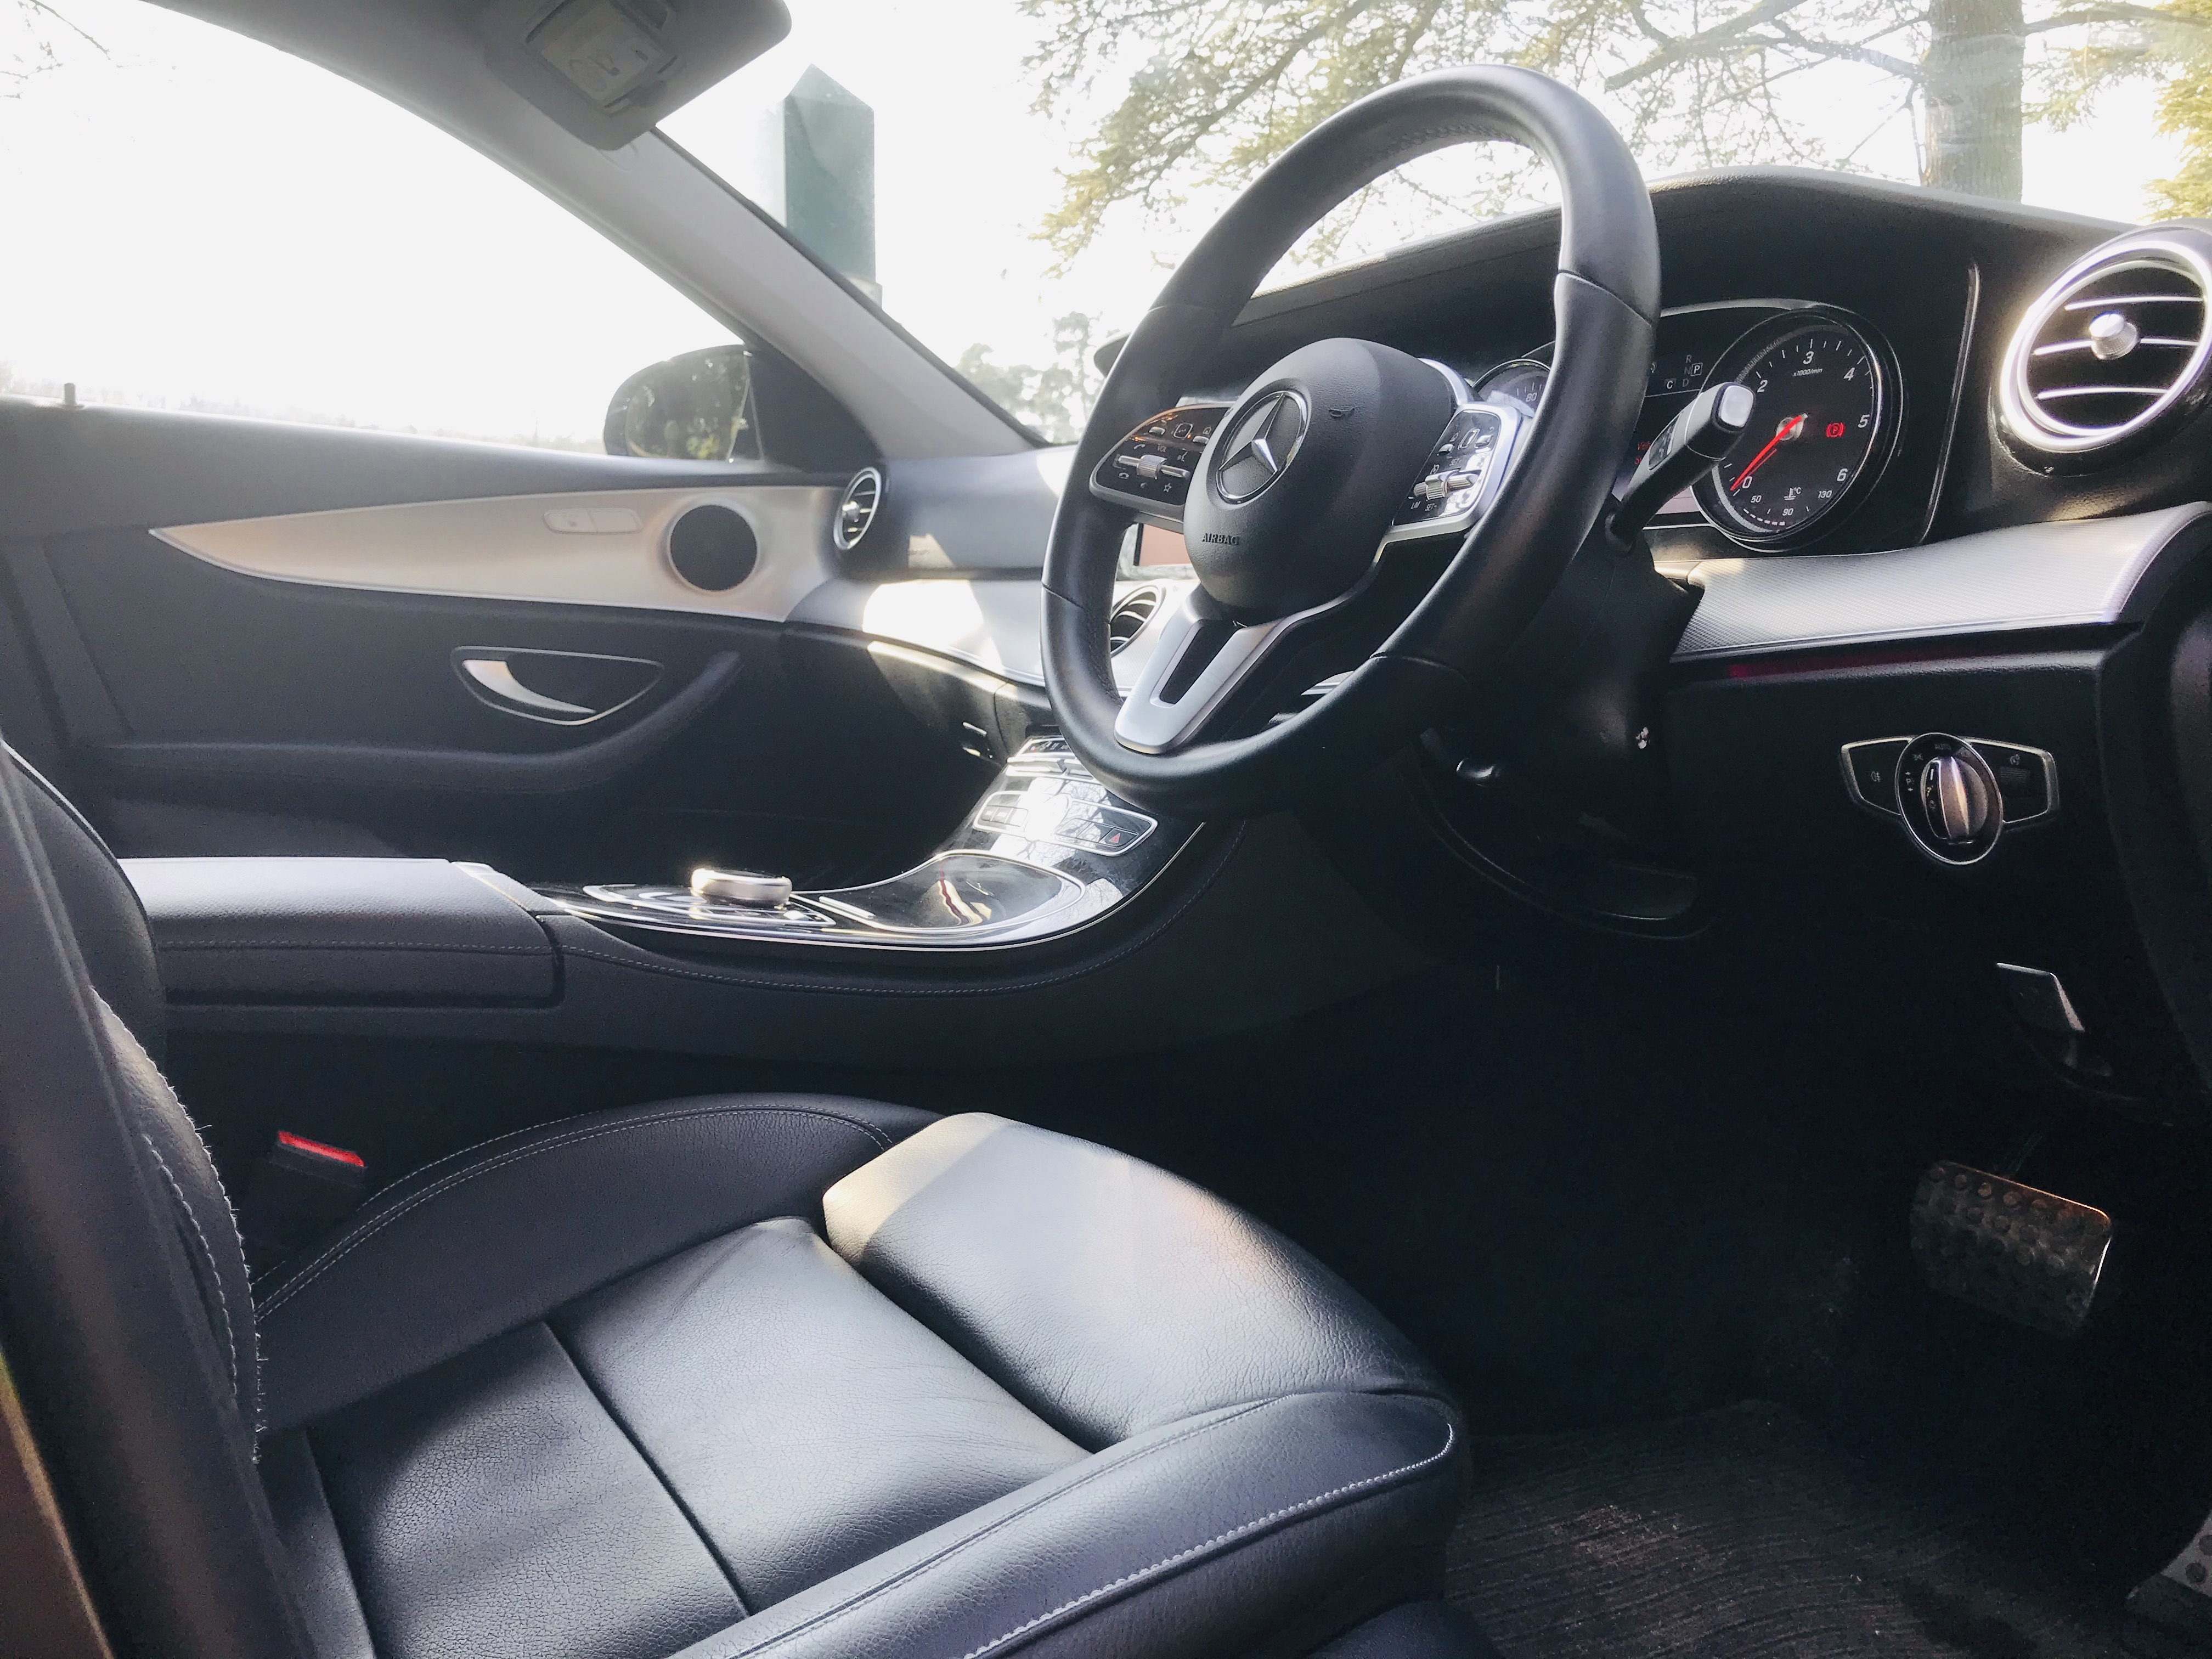 """On Sale MERCEDES E220d """"SPECIAL EQUIPMENT"""" 9G TRONIC (2019 MODEL) 1 OWNER - SAT NAV - LEATHER - WOW! - Image 10 of 26"""